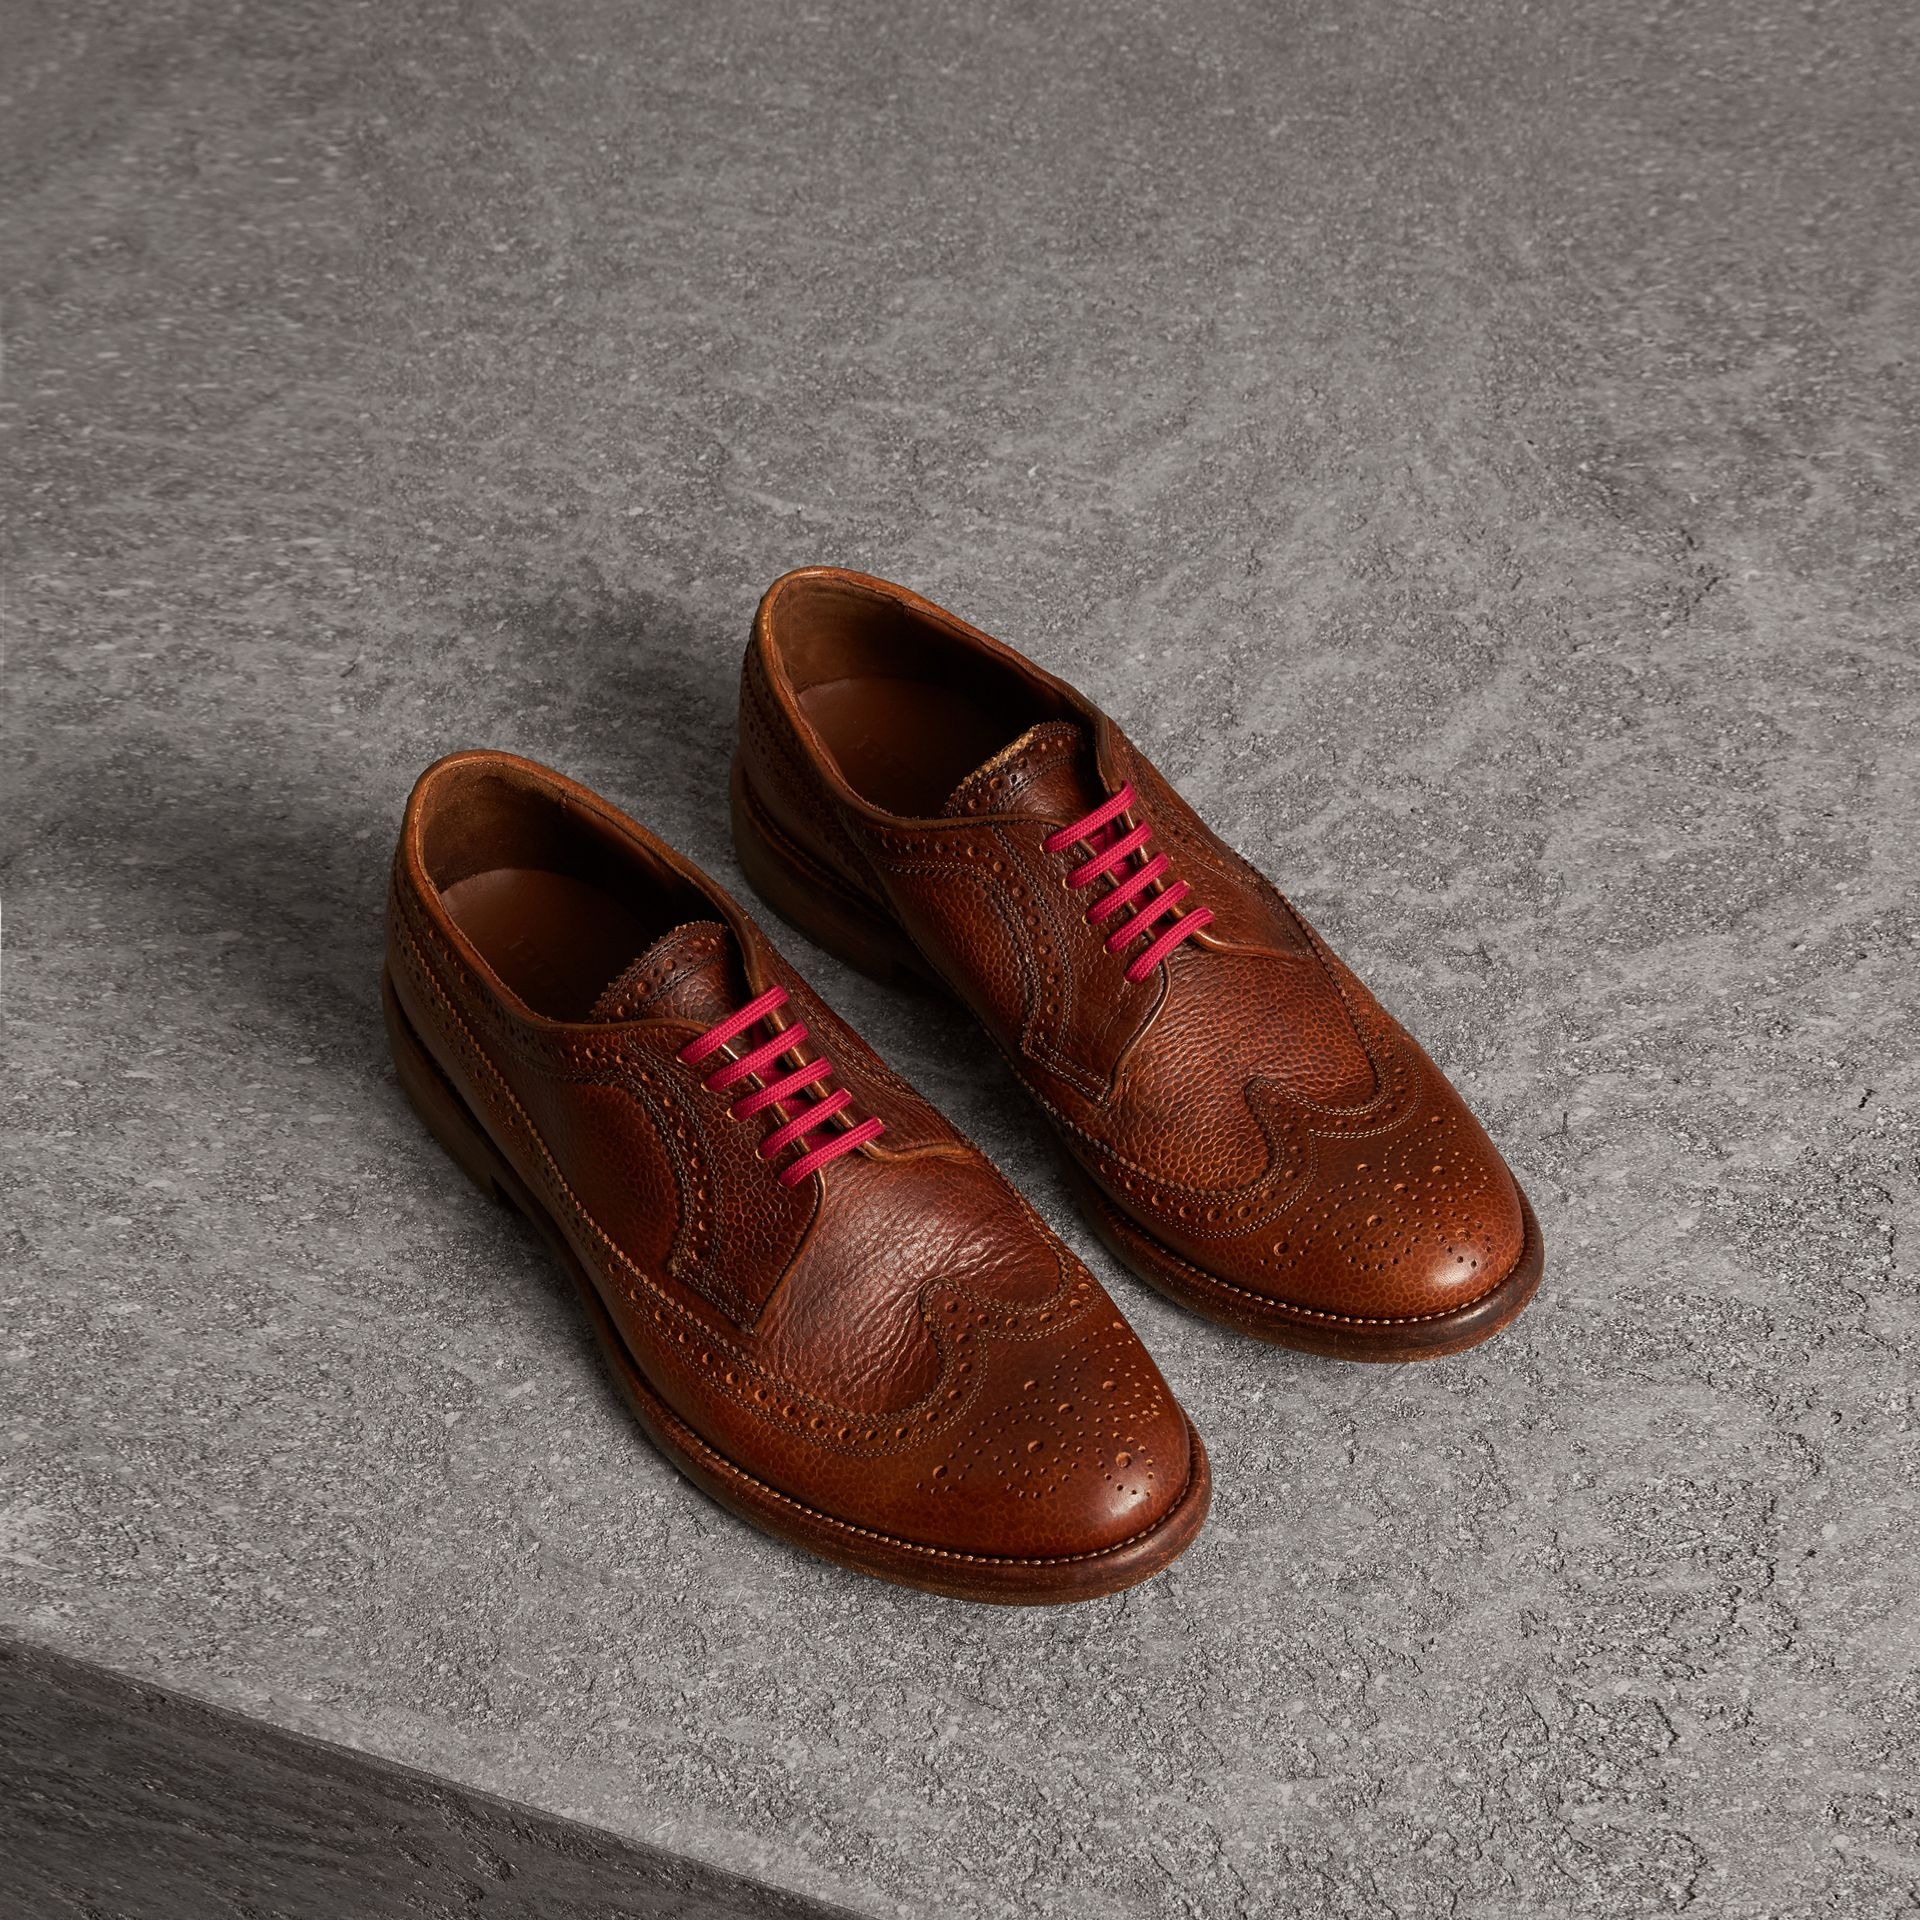 Grainy Leather Brogues with Bright Laces in Vintage Chestnut - Men | Burberry United States - gallery image 0